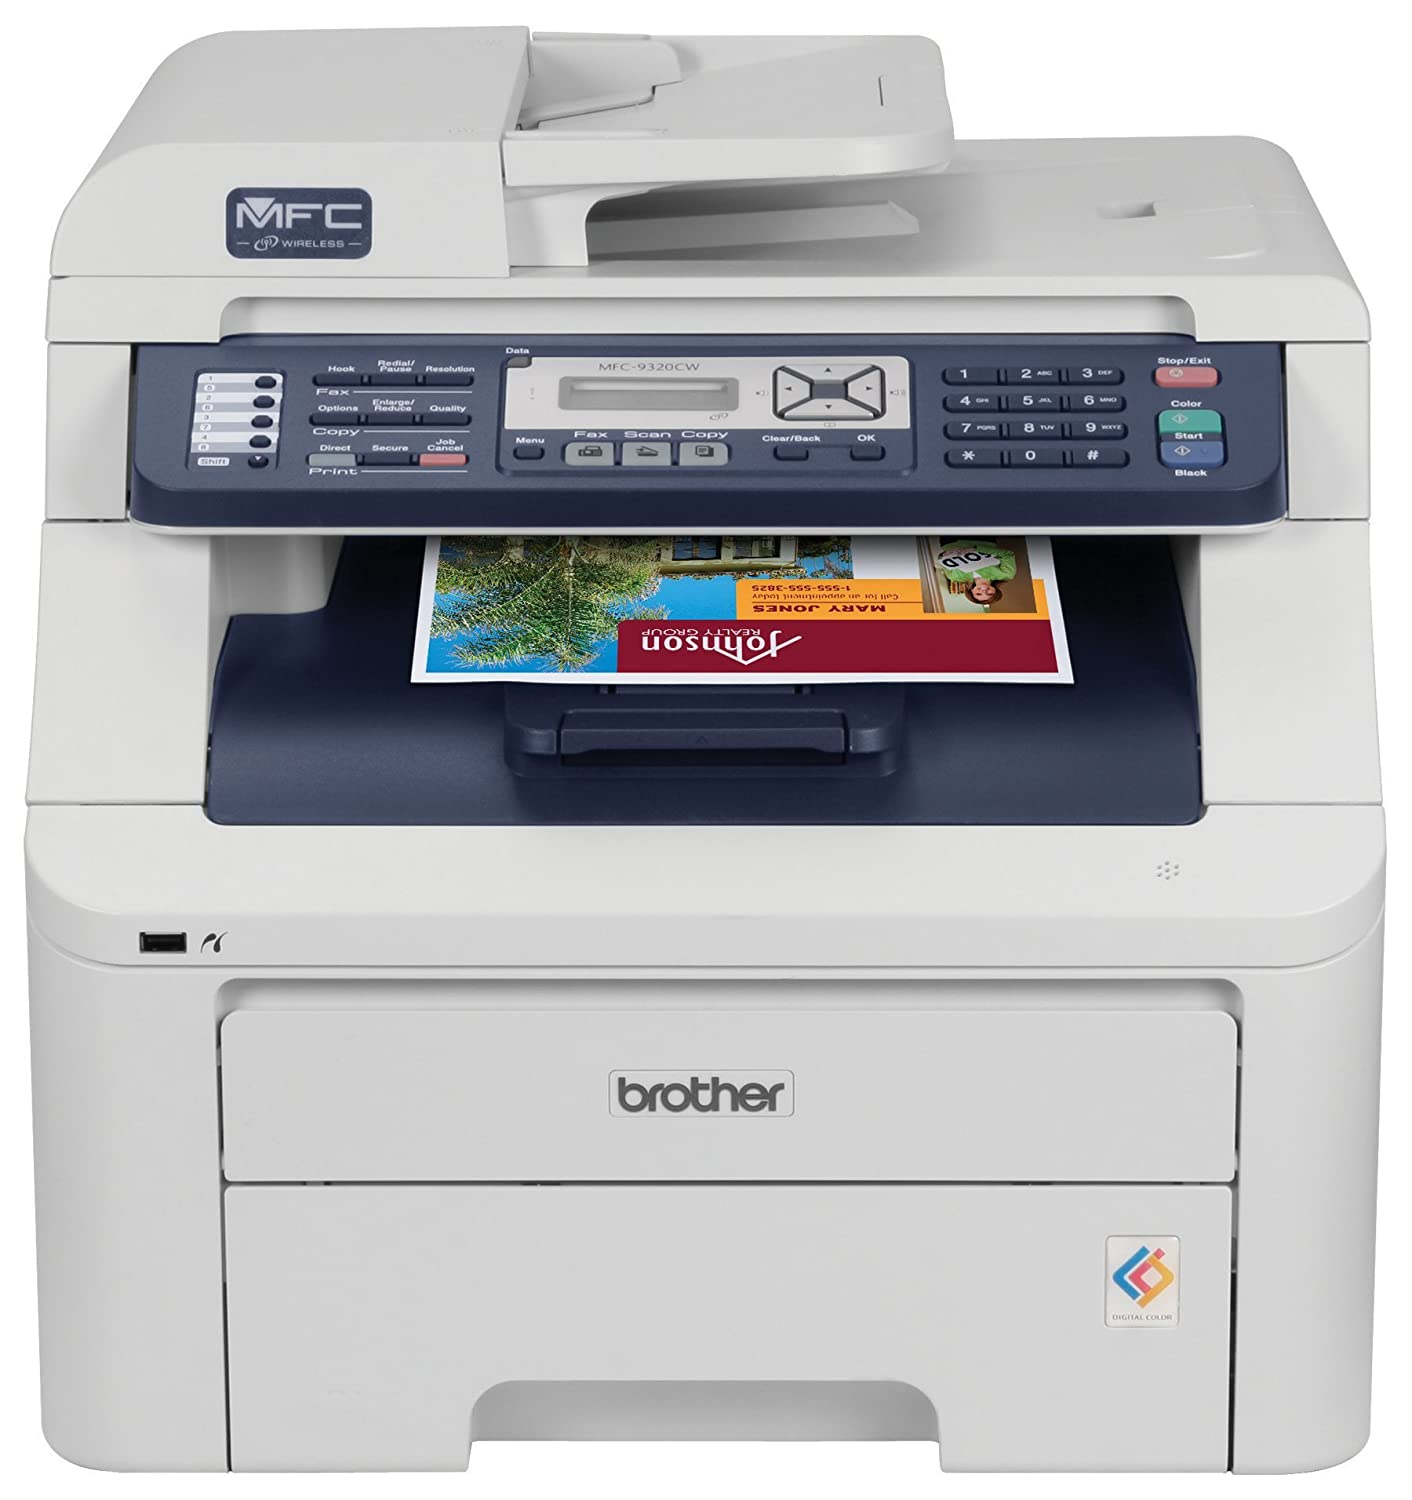 Amazon.com: Brother MFC-9320CW Digital Color All-in-One Printer with  Wireless Networking: Electronics